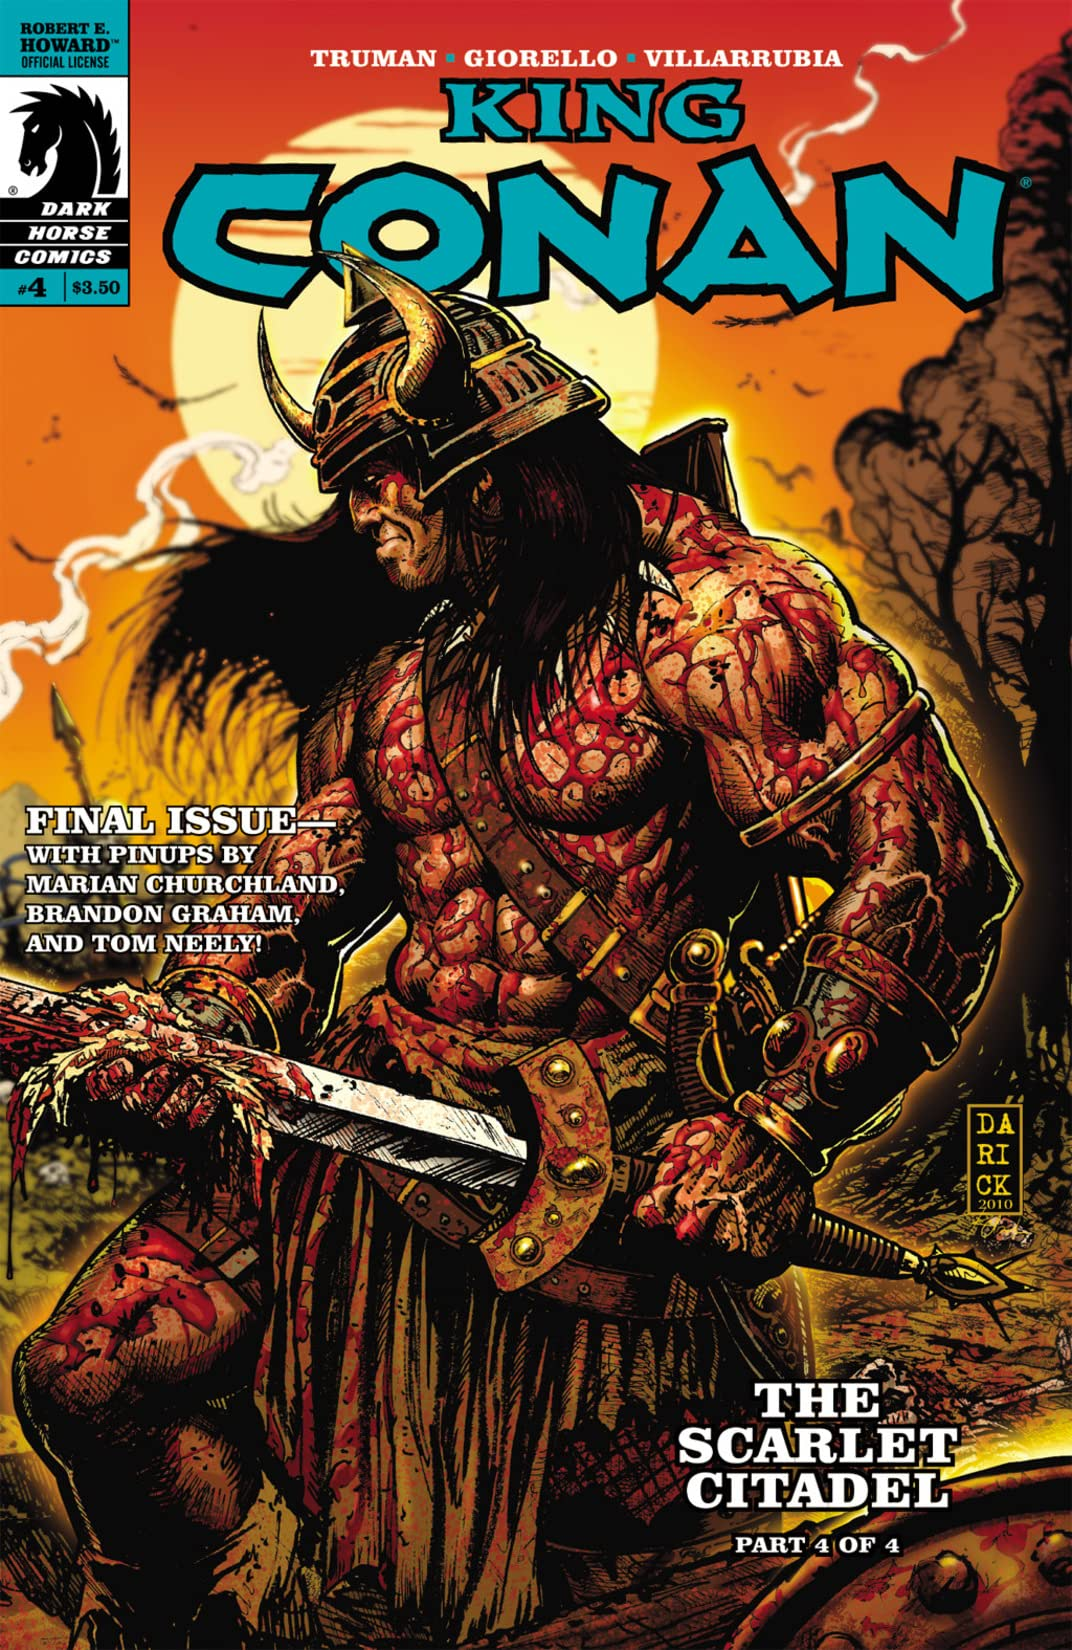 King Conan: The Scarlet Citadel #4